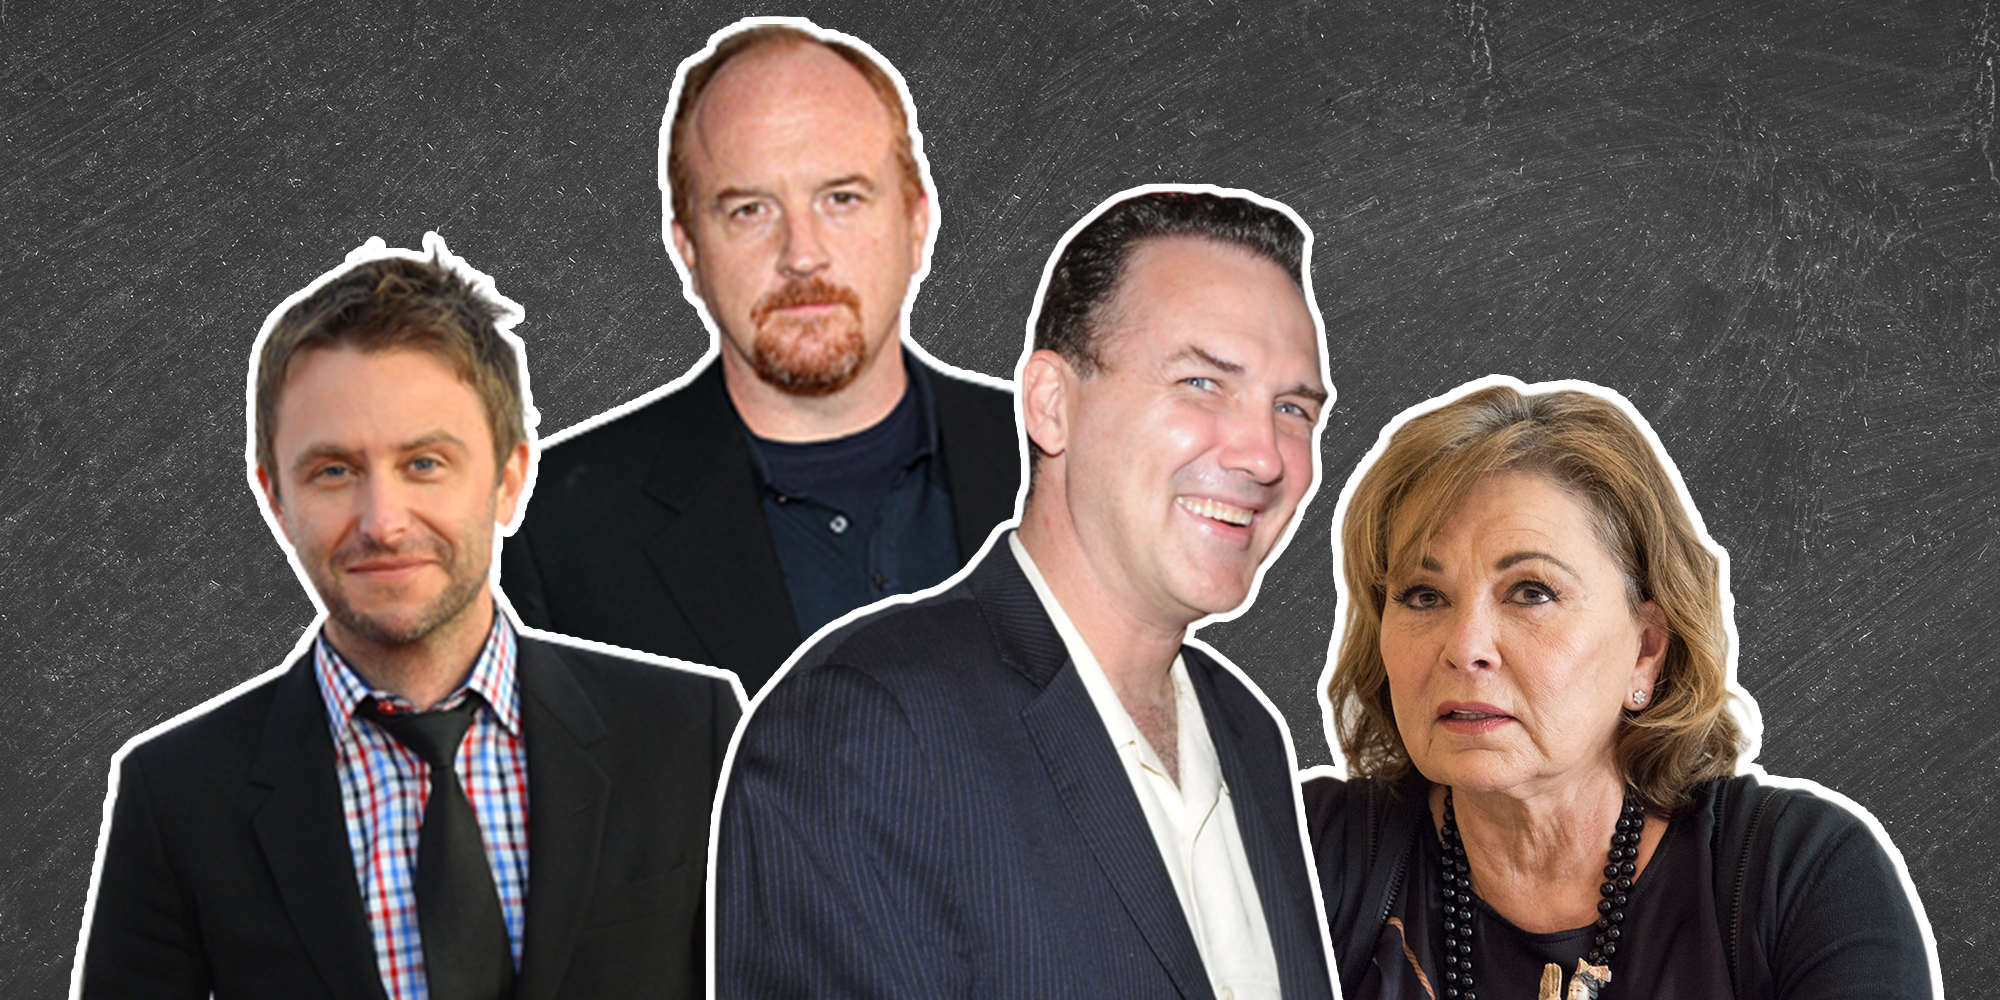 Canceled Comedy: 8 Comedians Who We Now Know Are Horrible People